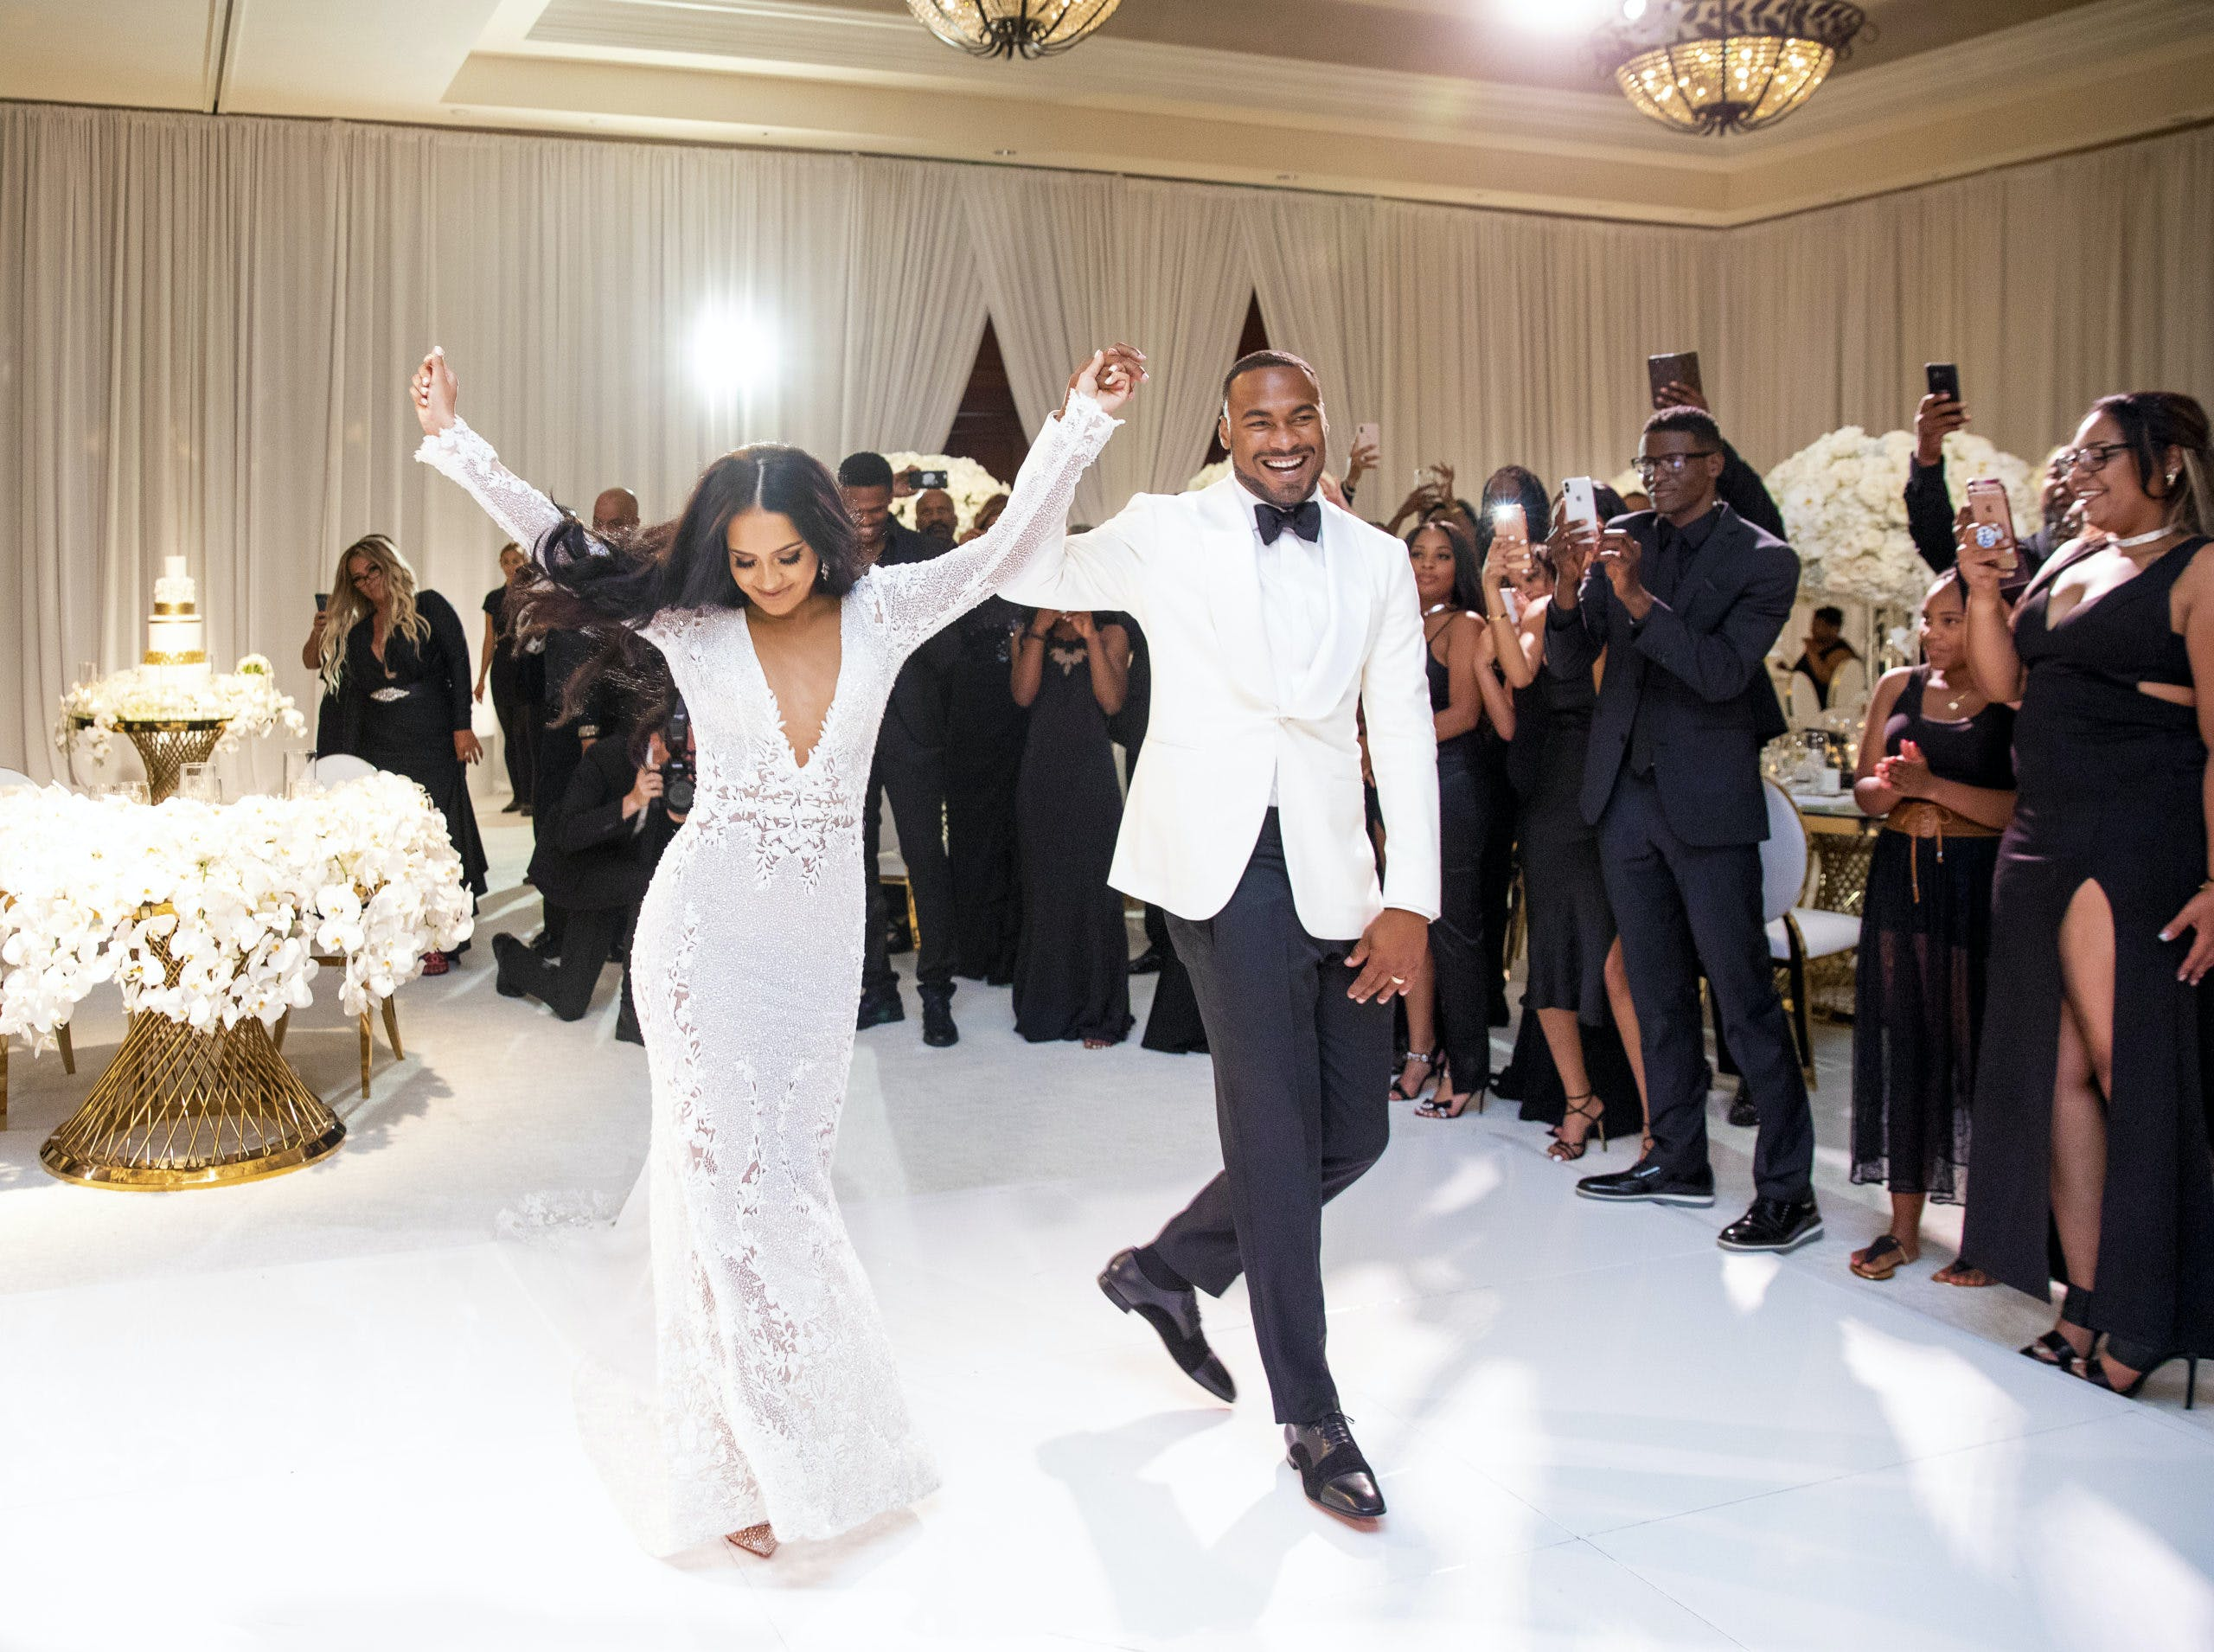 Bride and groom dancing and walking into wedding reception for first time   PartySlate